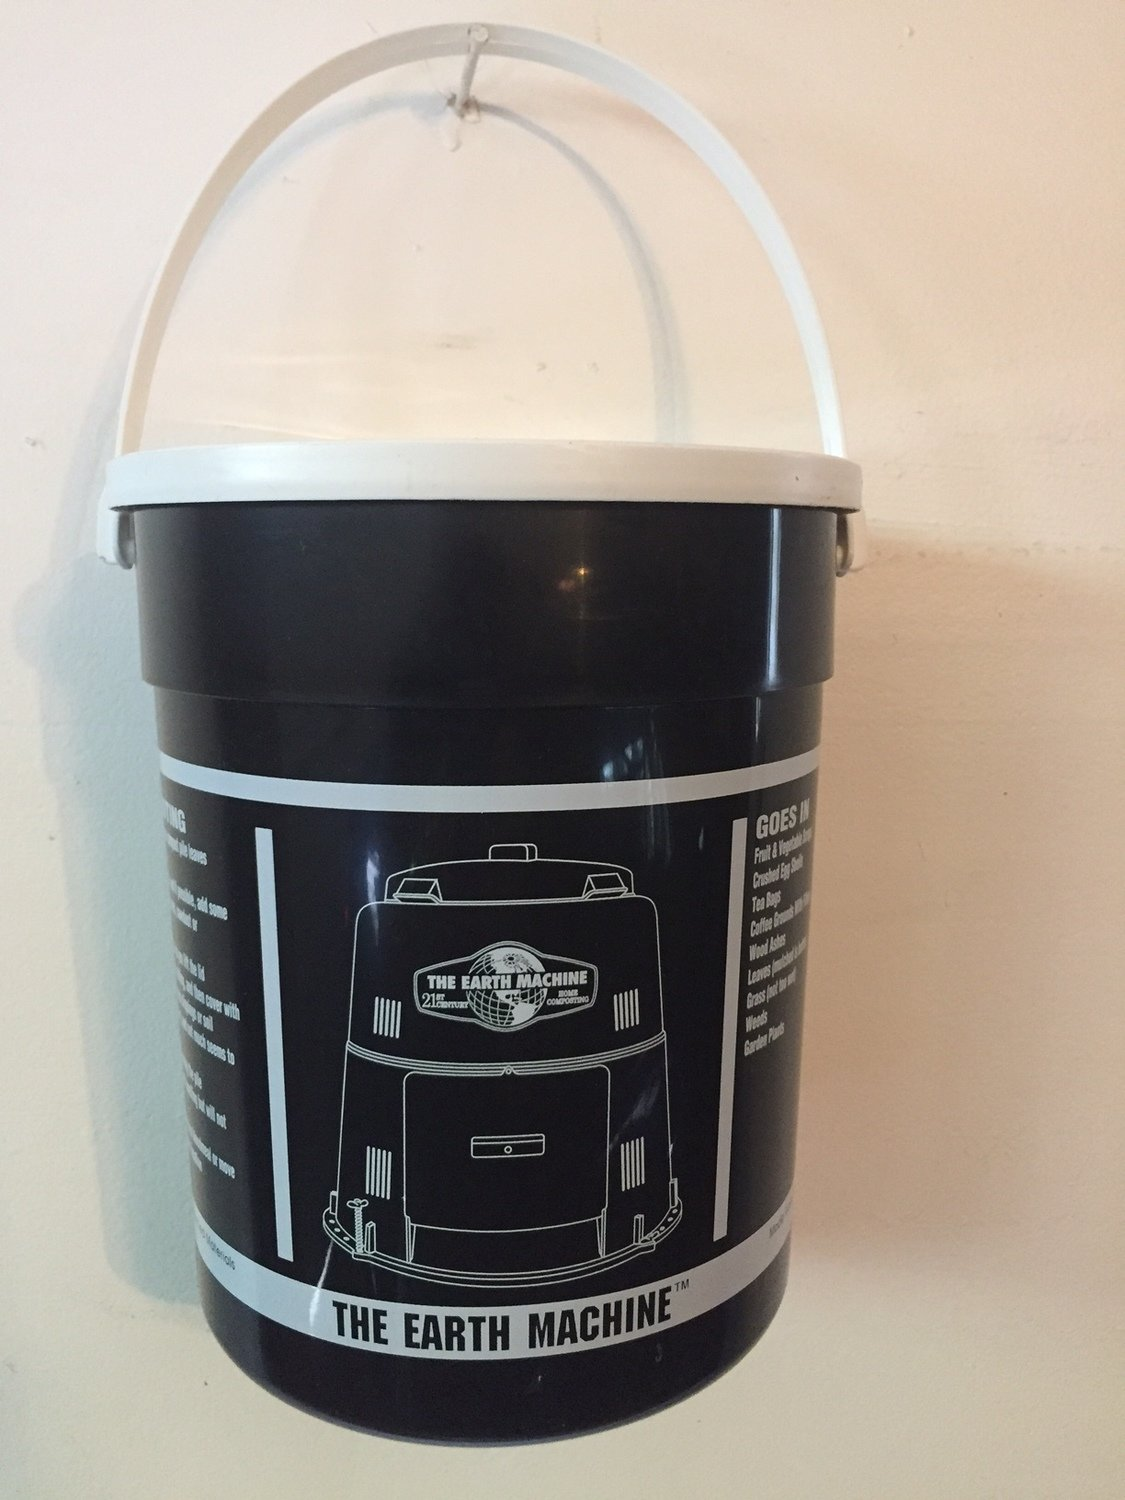 Kitchen Scrap Pail - FREE with the purchase of an Earth Machine!